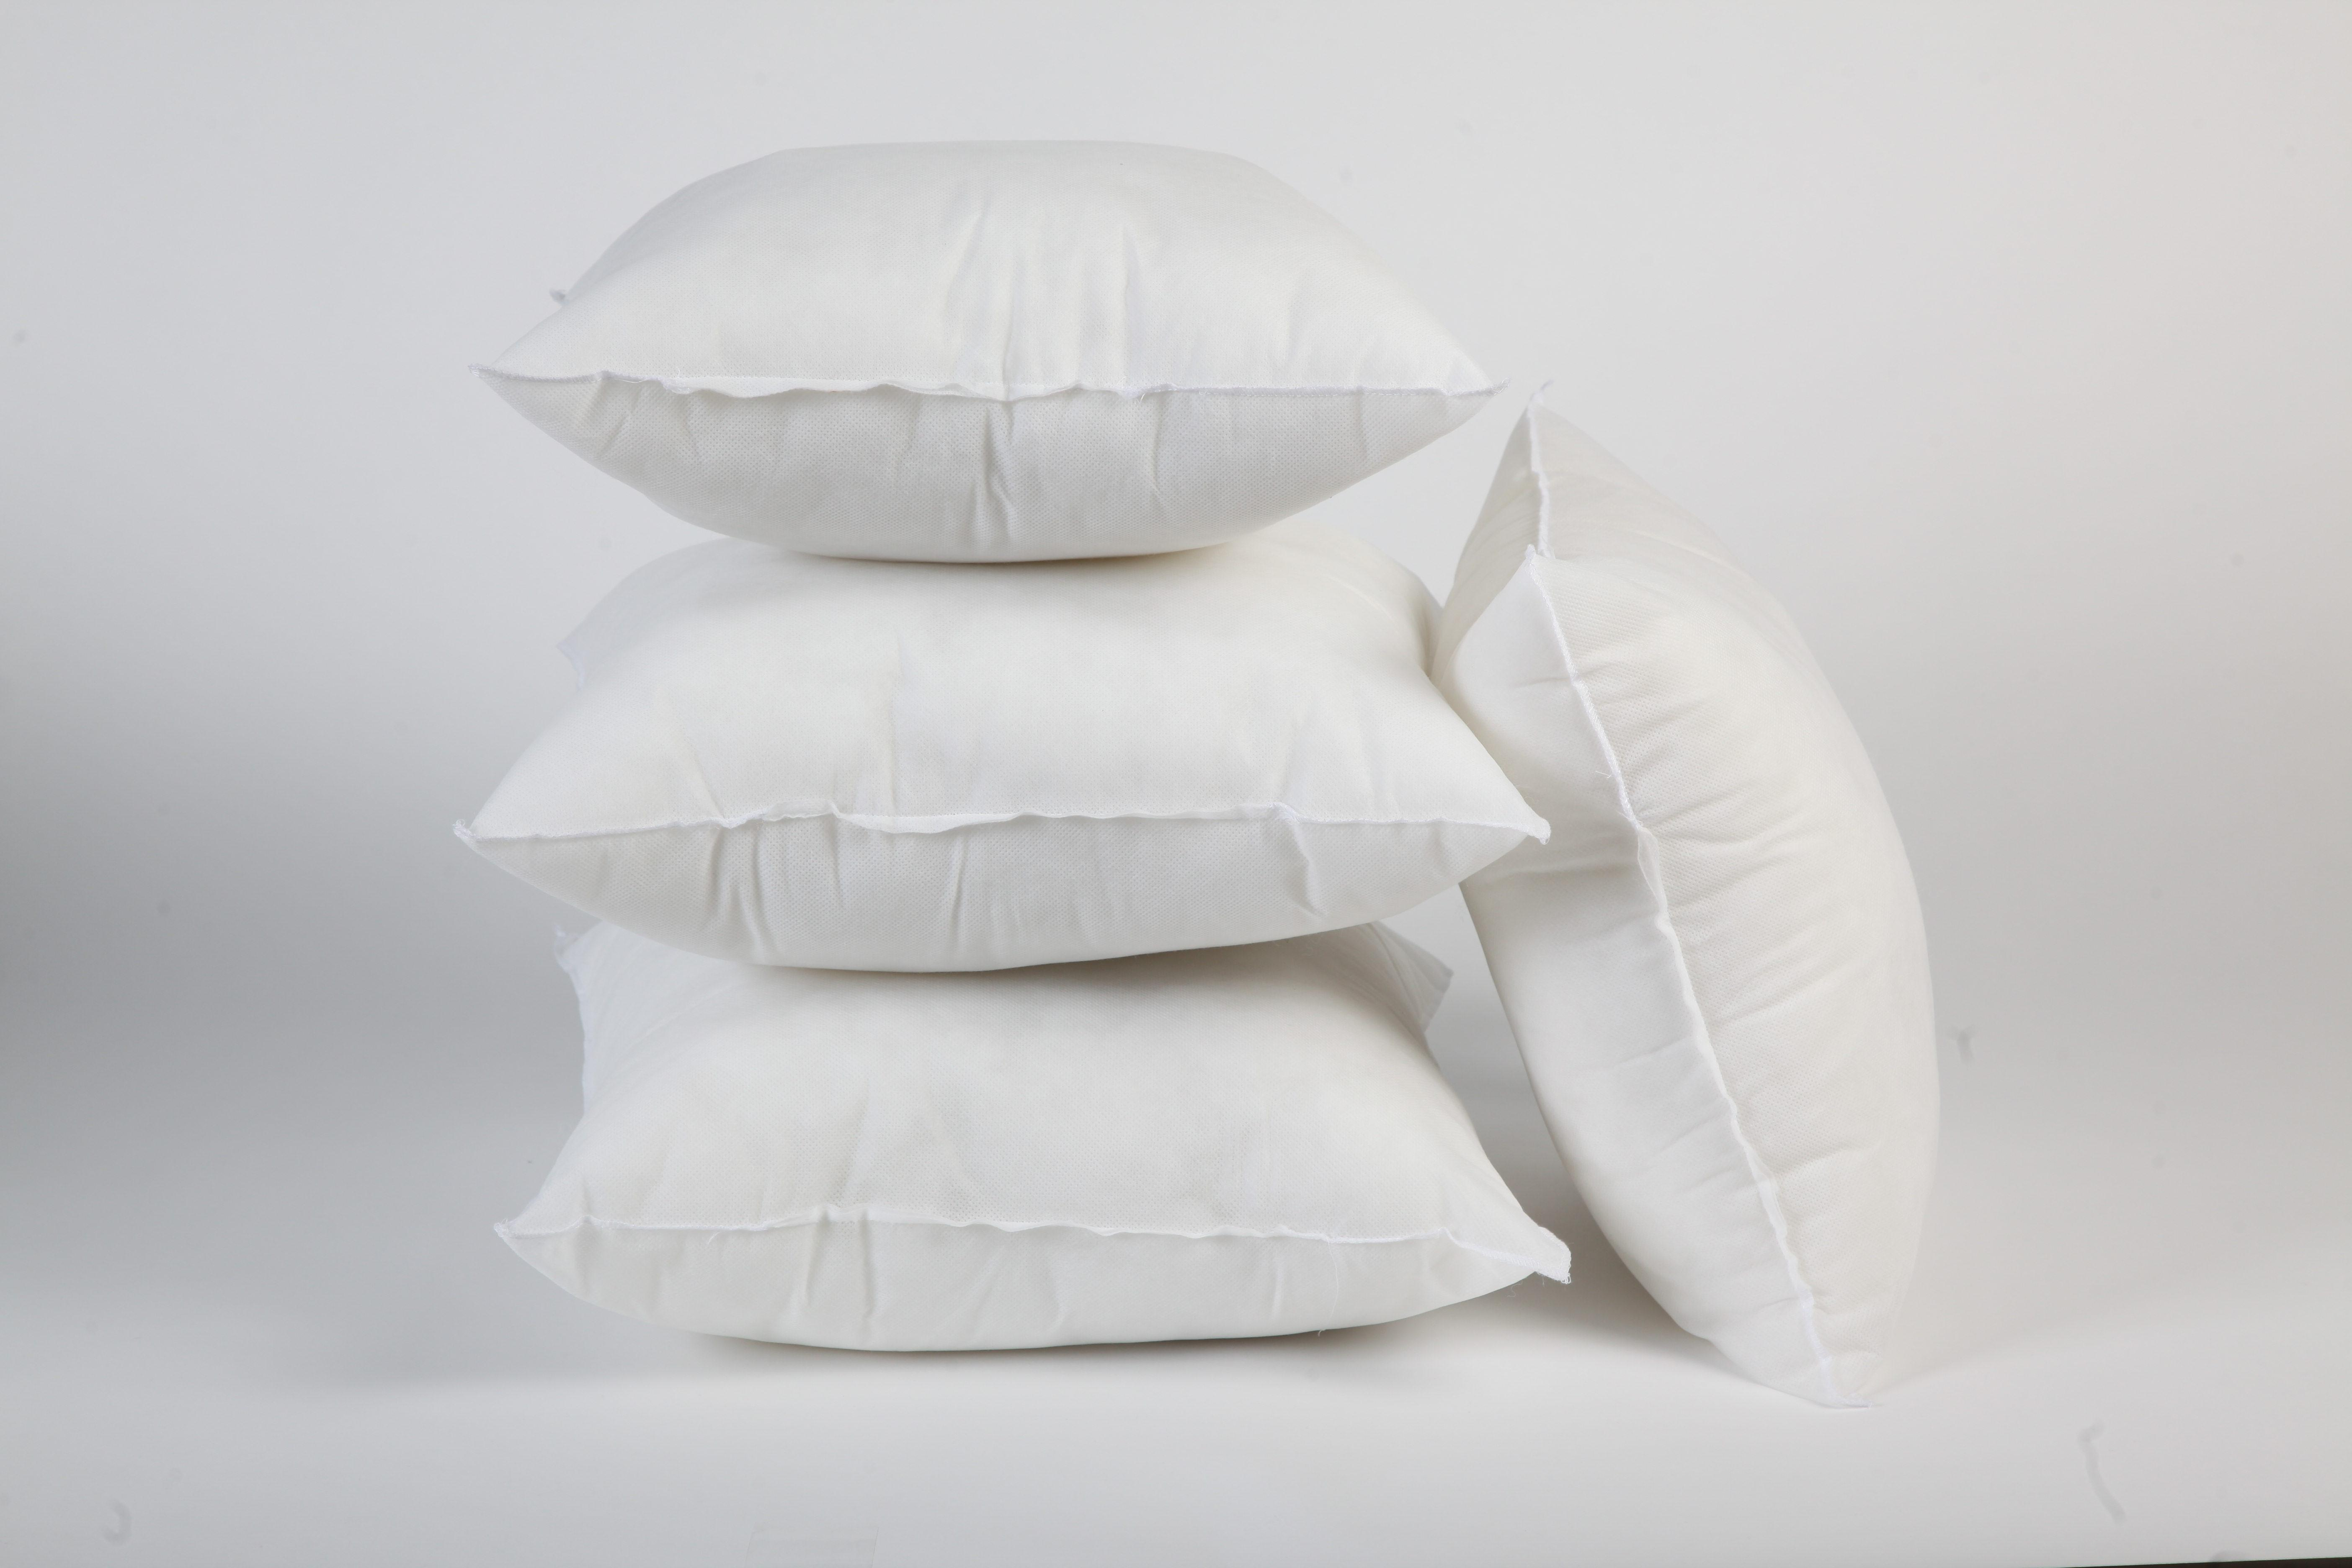 en filling colour cushion ullkaktus your holds silver polyester pillow pads textiles gb products inner soft its filler shape the ikea cushions body gives rugs support and